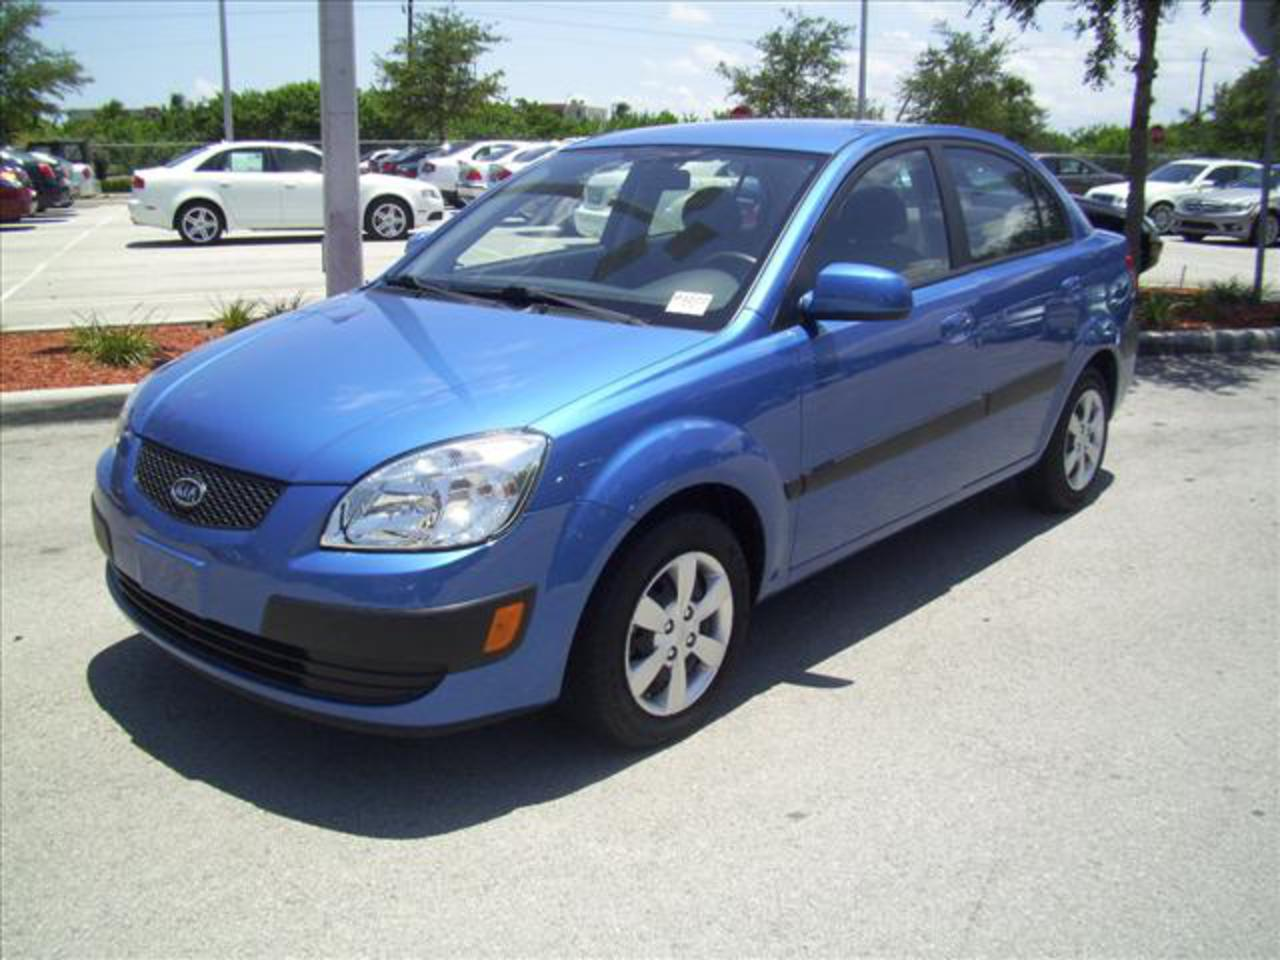 Kia Rio JB 14 LX: Photo gallery, complete information about model ...